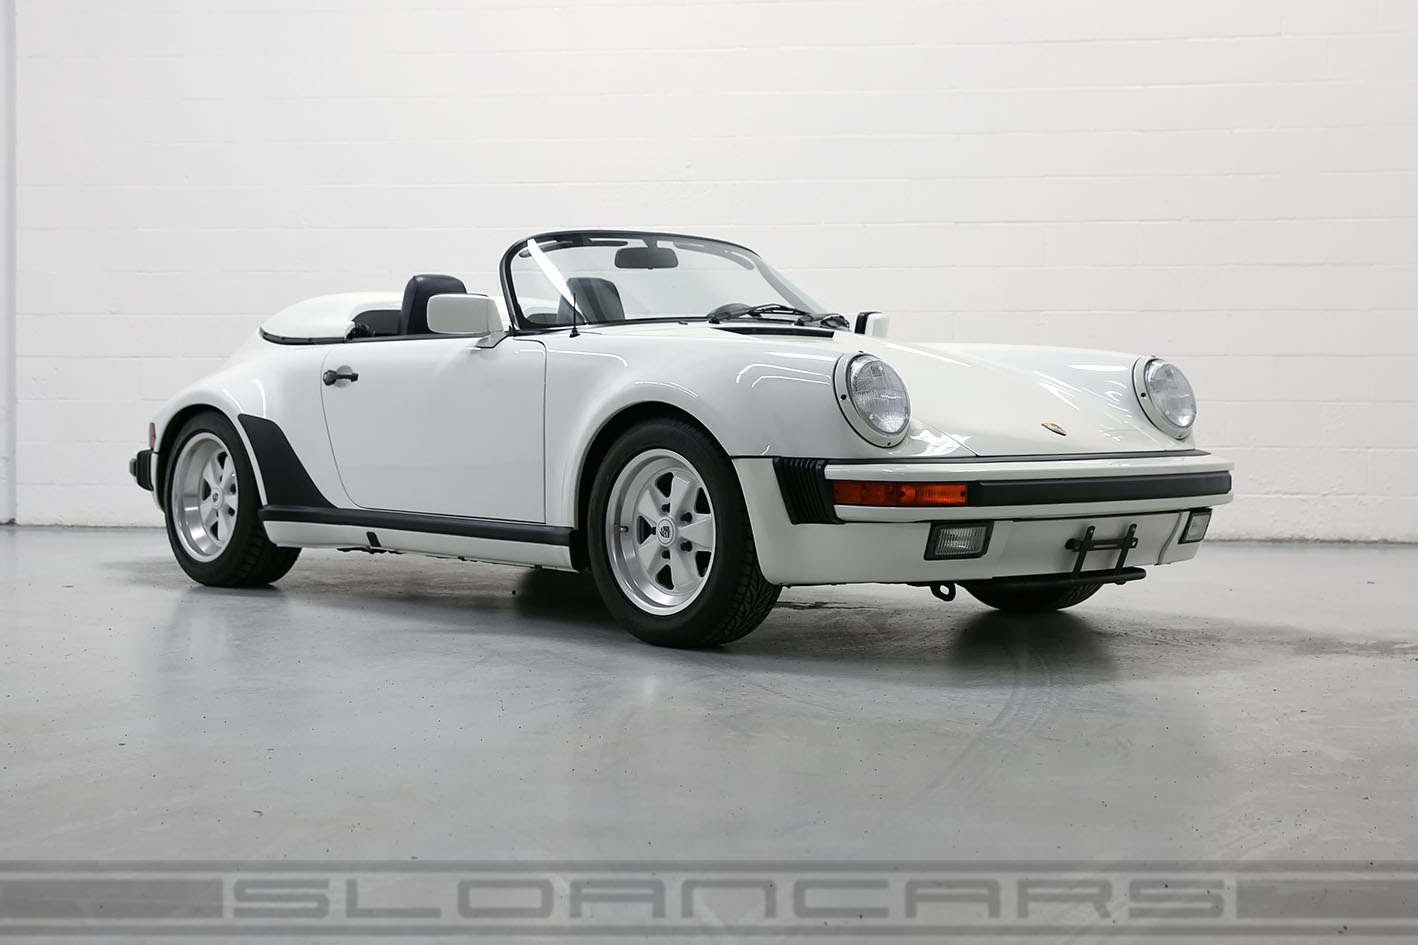 1989 Porsche 911 Speedster Grand Prix White Navy Top